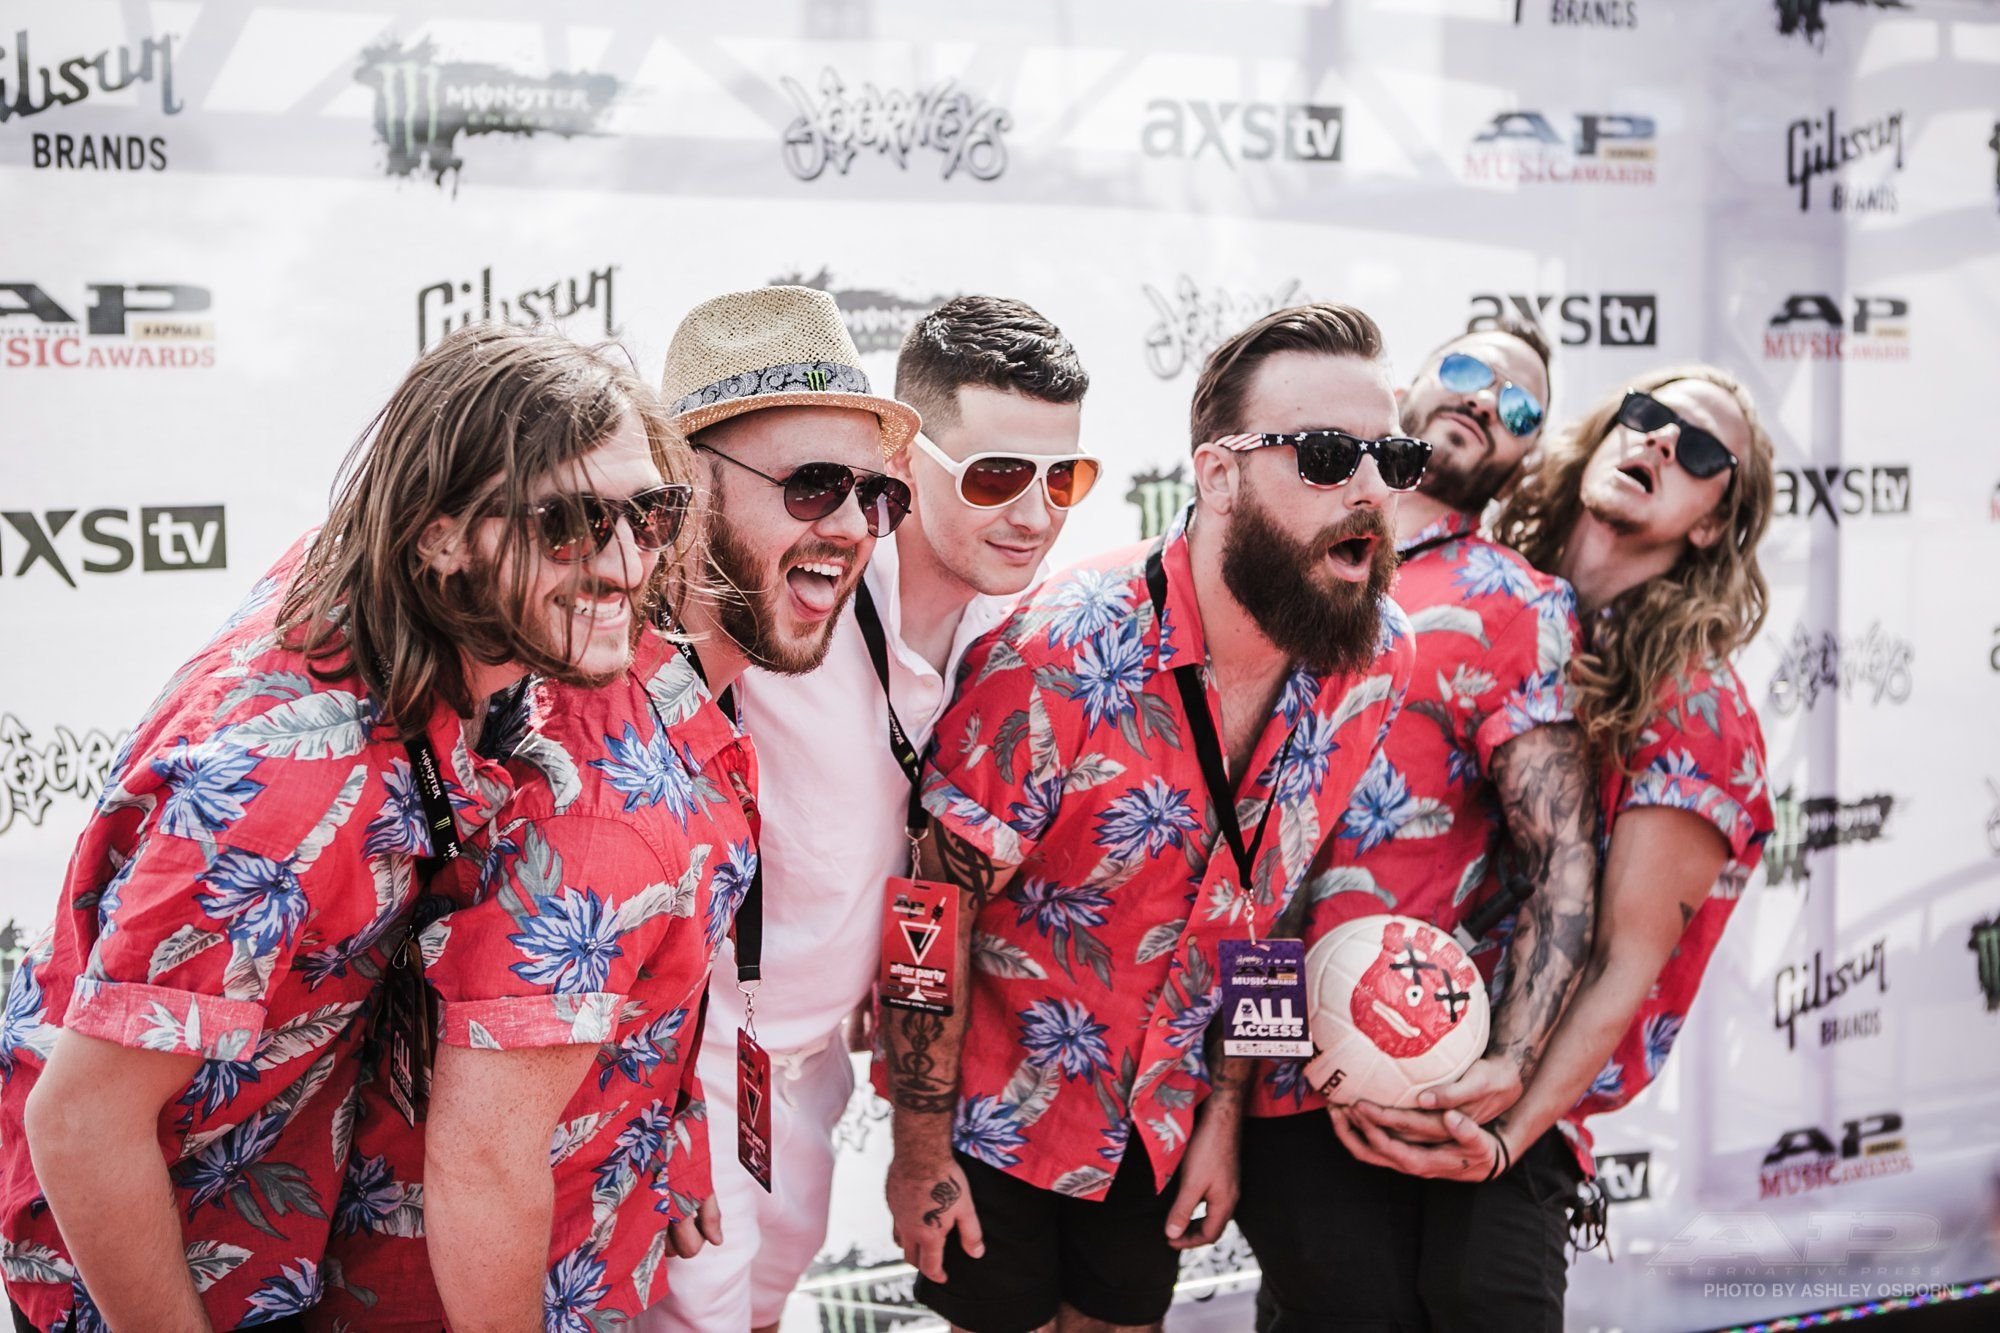 The Guys From Wilson Look Pretty Rad In Those Hawaiian Shirts Don T They Check Out All The Best Moments And Gr How To Look Pretty Red Carpet Hawaiian Shirt